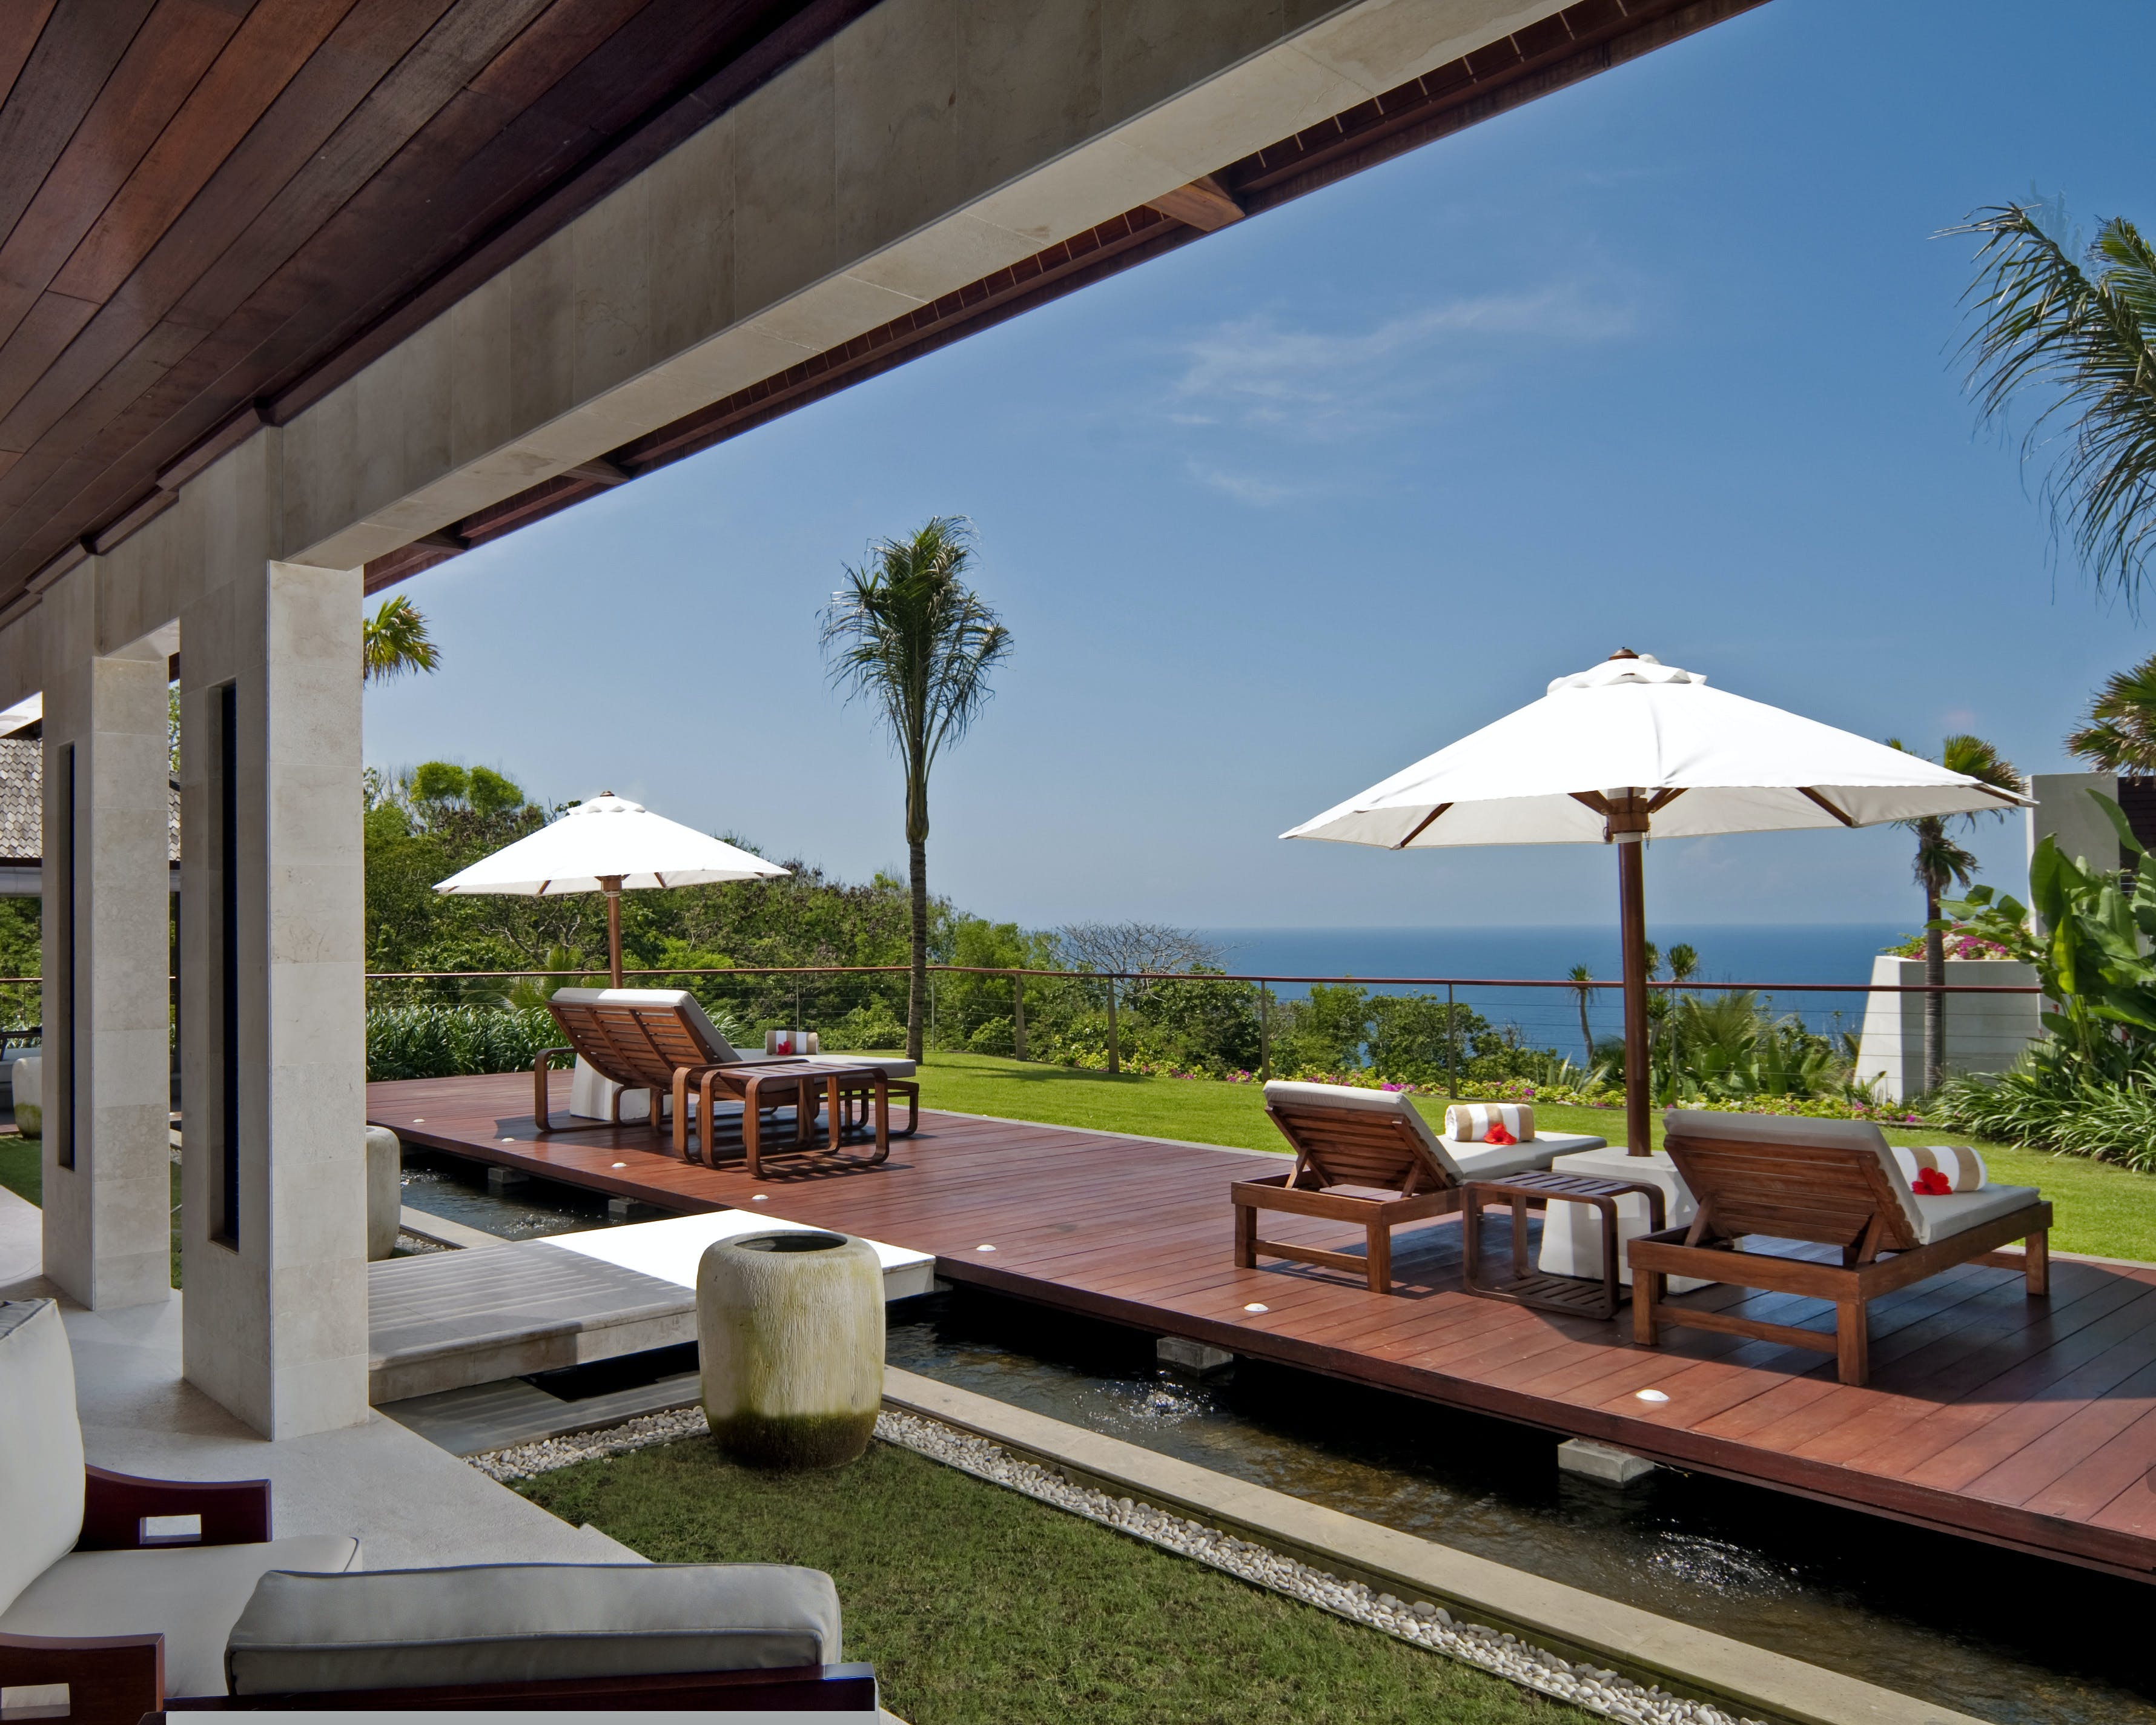 The Mood villa at The edge Luxury Villa Resort, Uluwatu Bali